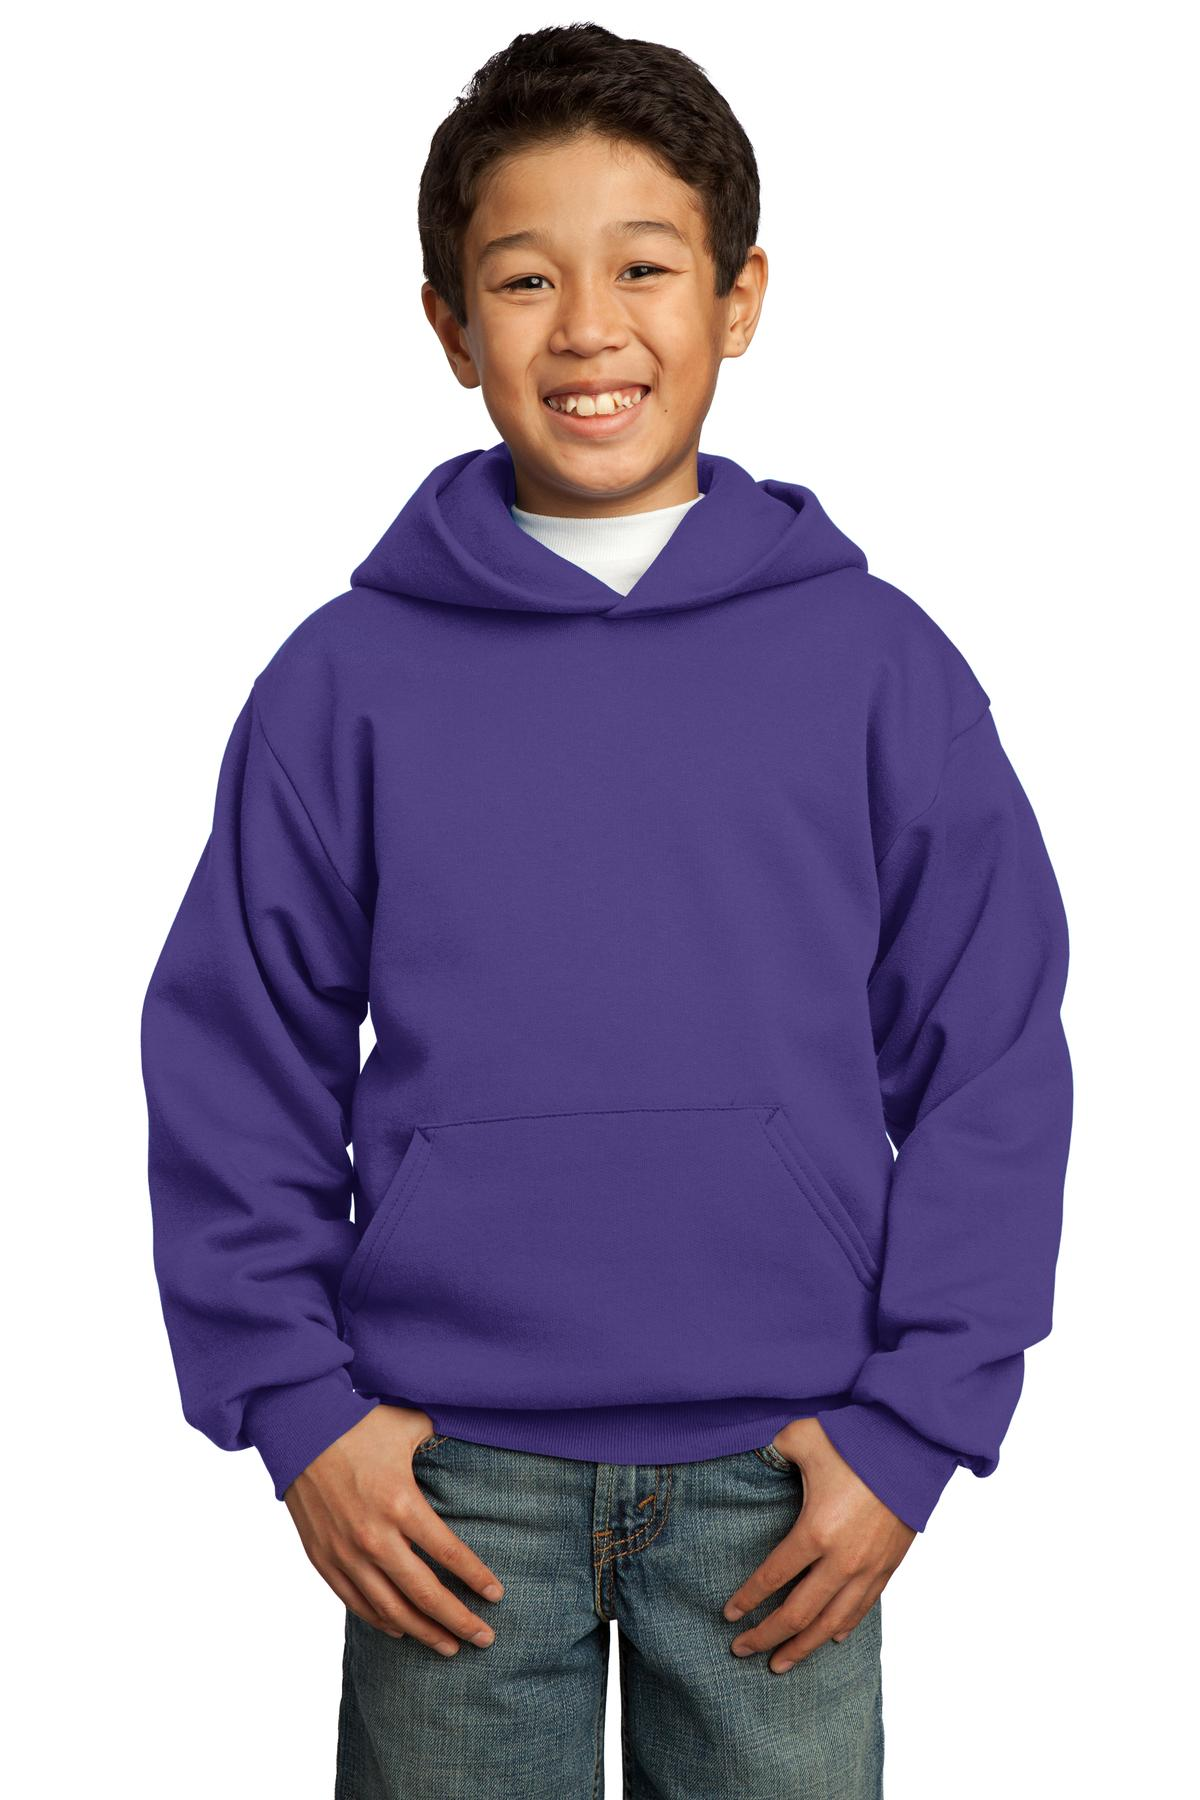 Port & Company ®  - Youth Core Fleece Pullover Hooded Sweatshirt.  PC90YH - Purple